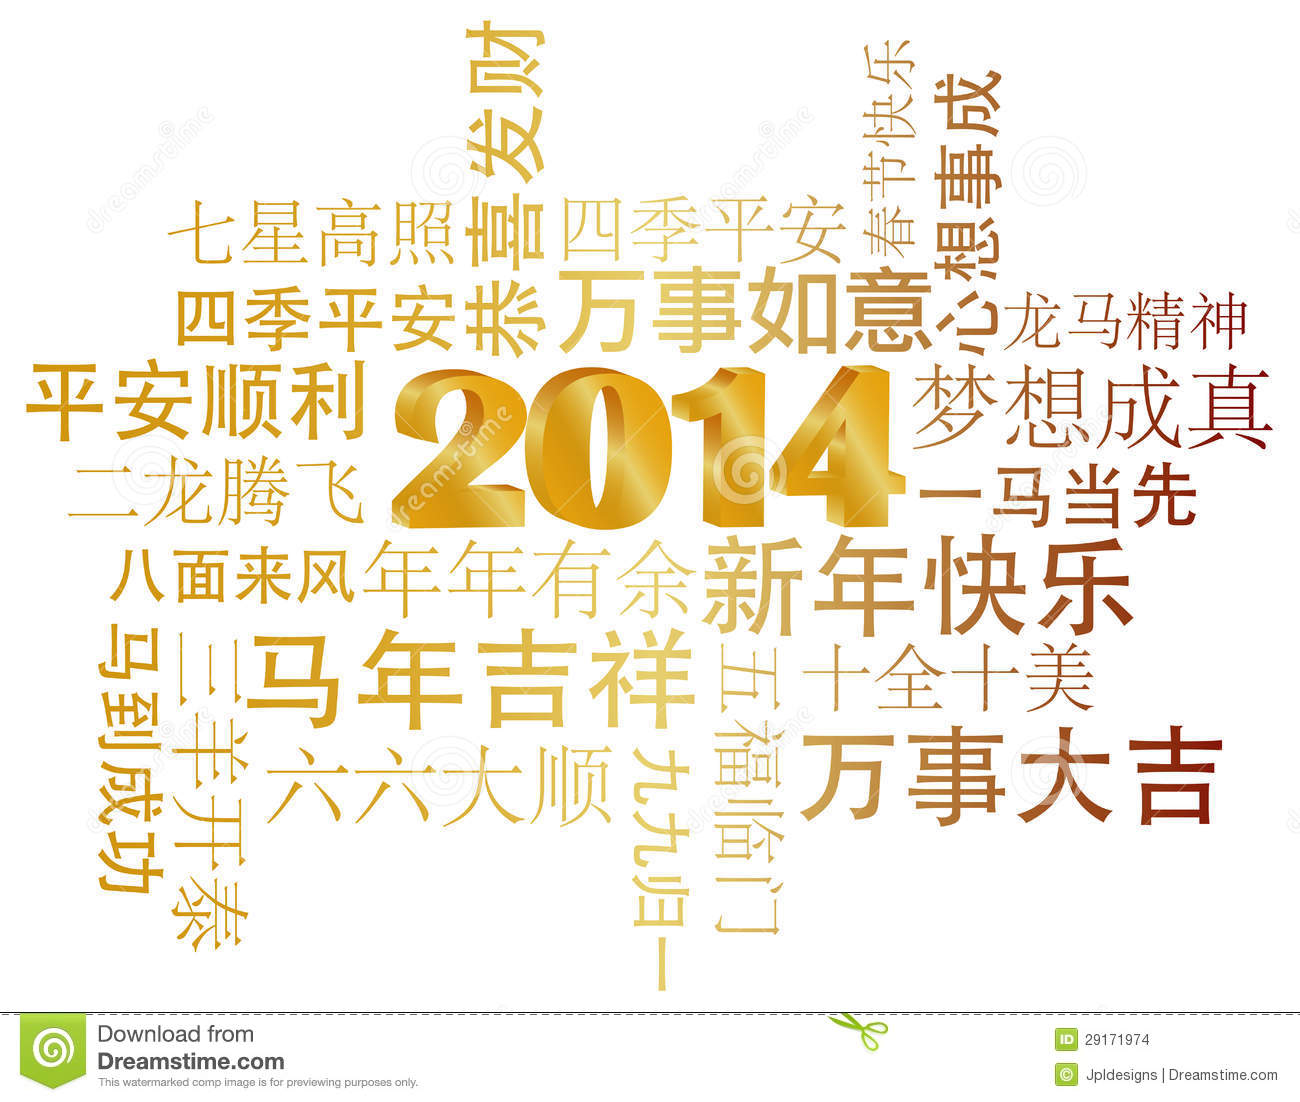 2014 Chinese New Year Greetings Text Stock Vector - Illustration of ...